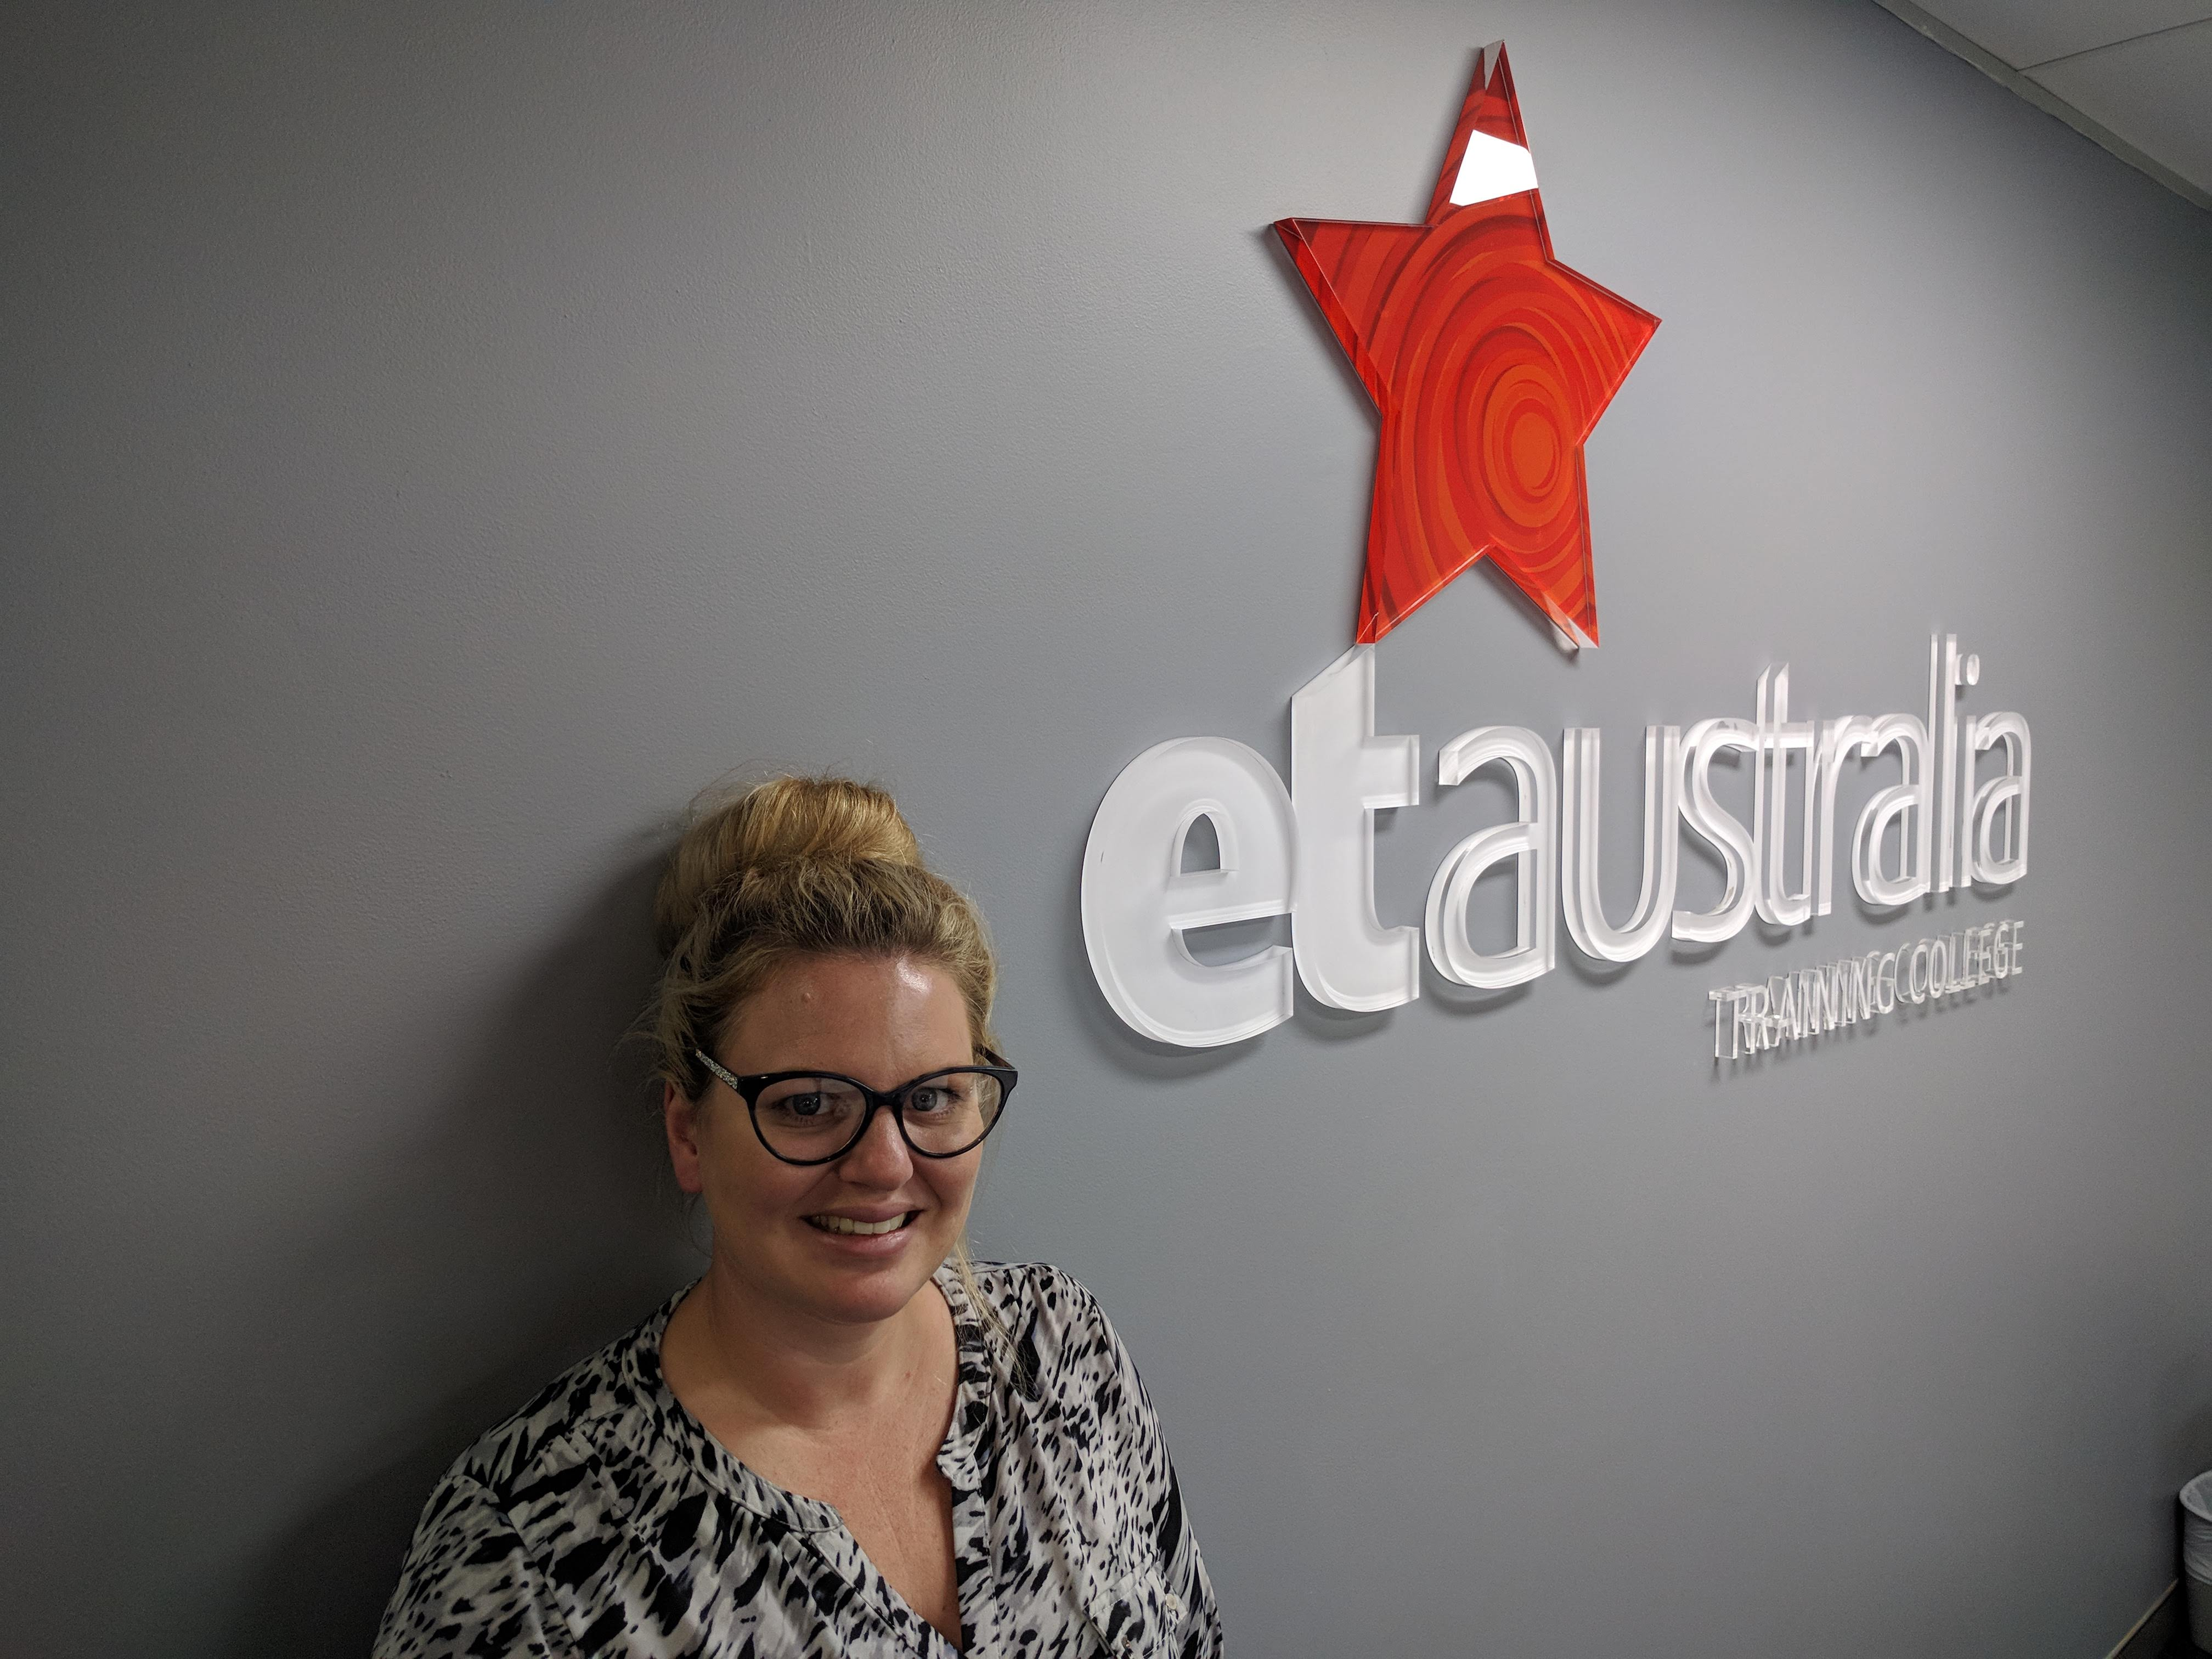 Dana Mahia Joins ET Australia Training College As Their New Business Development Manager